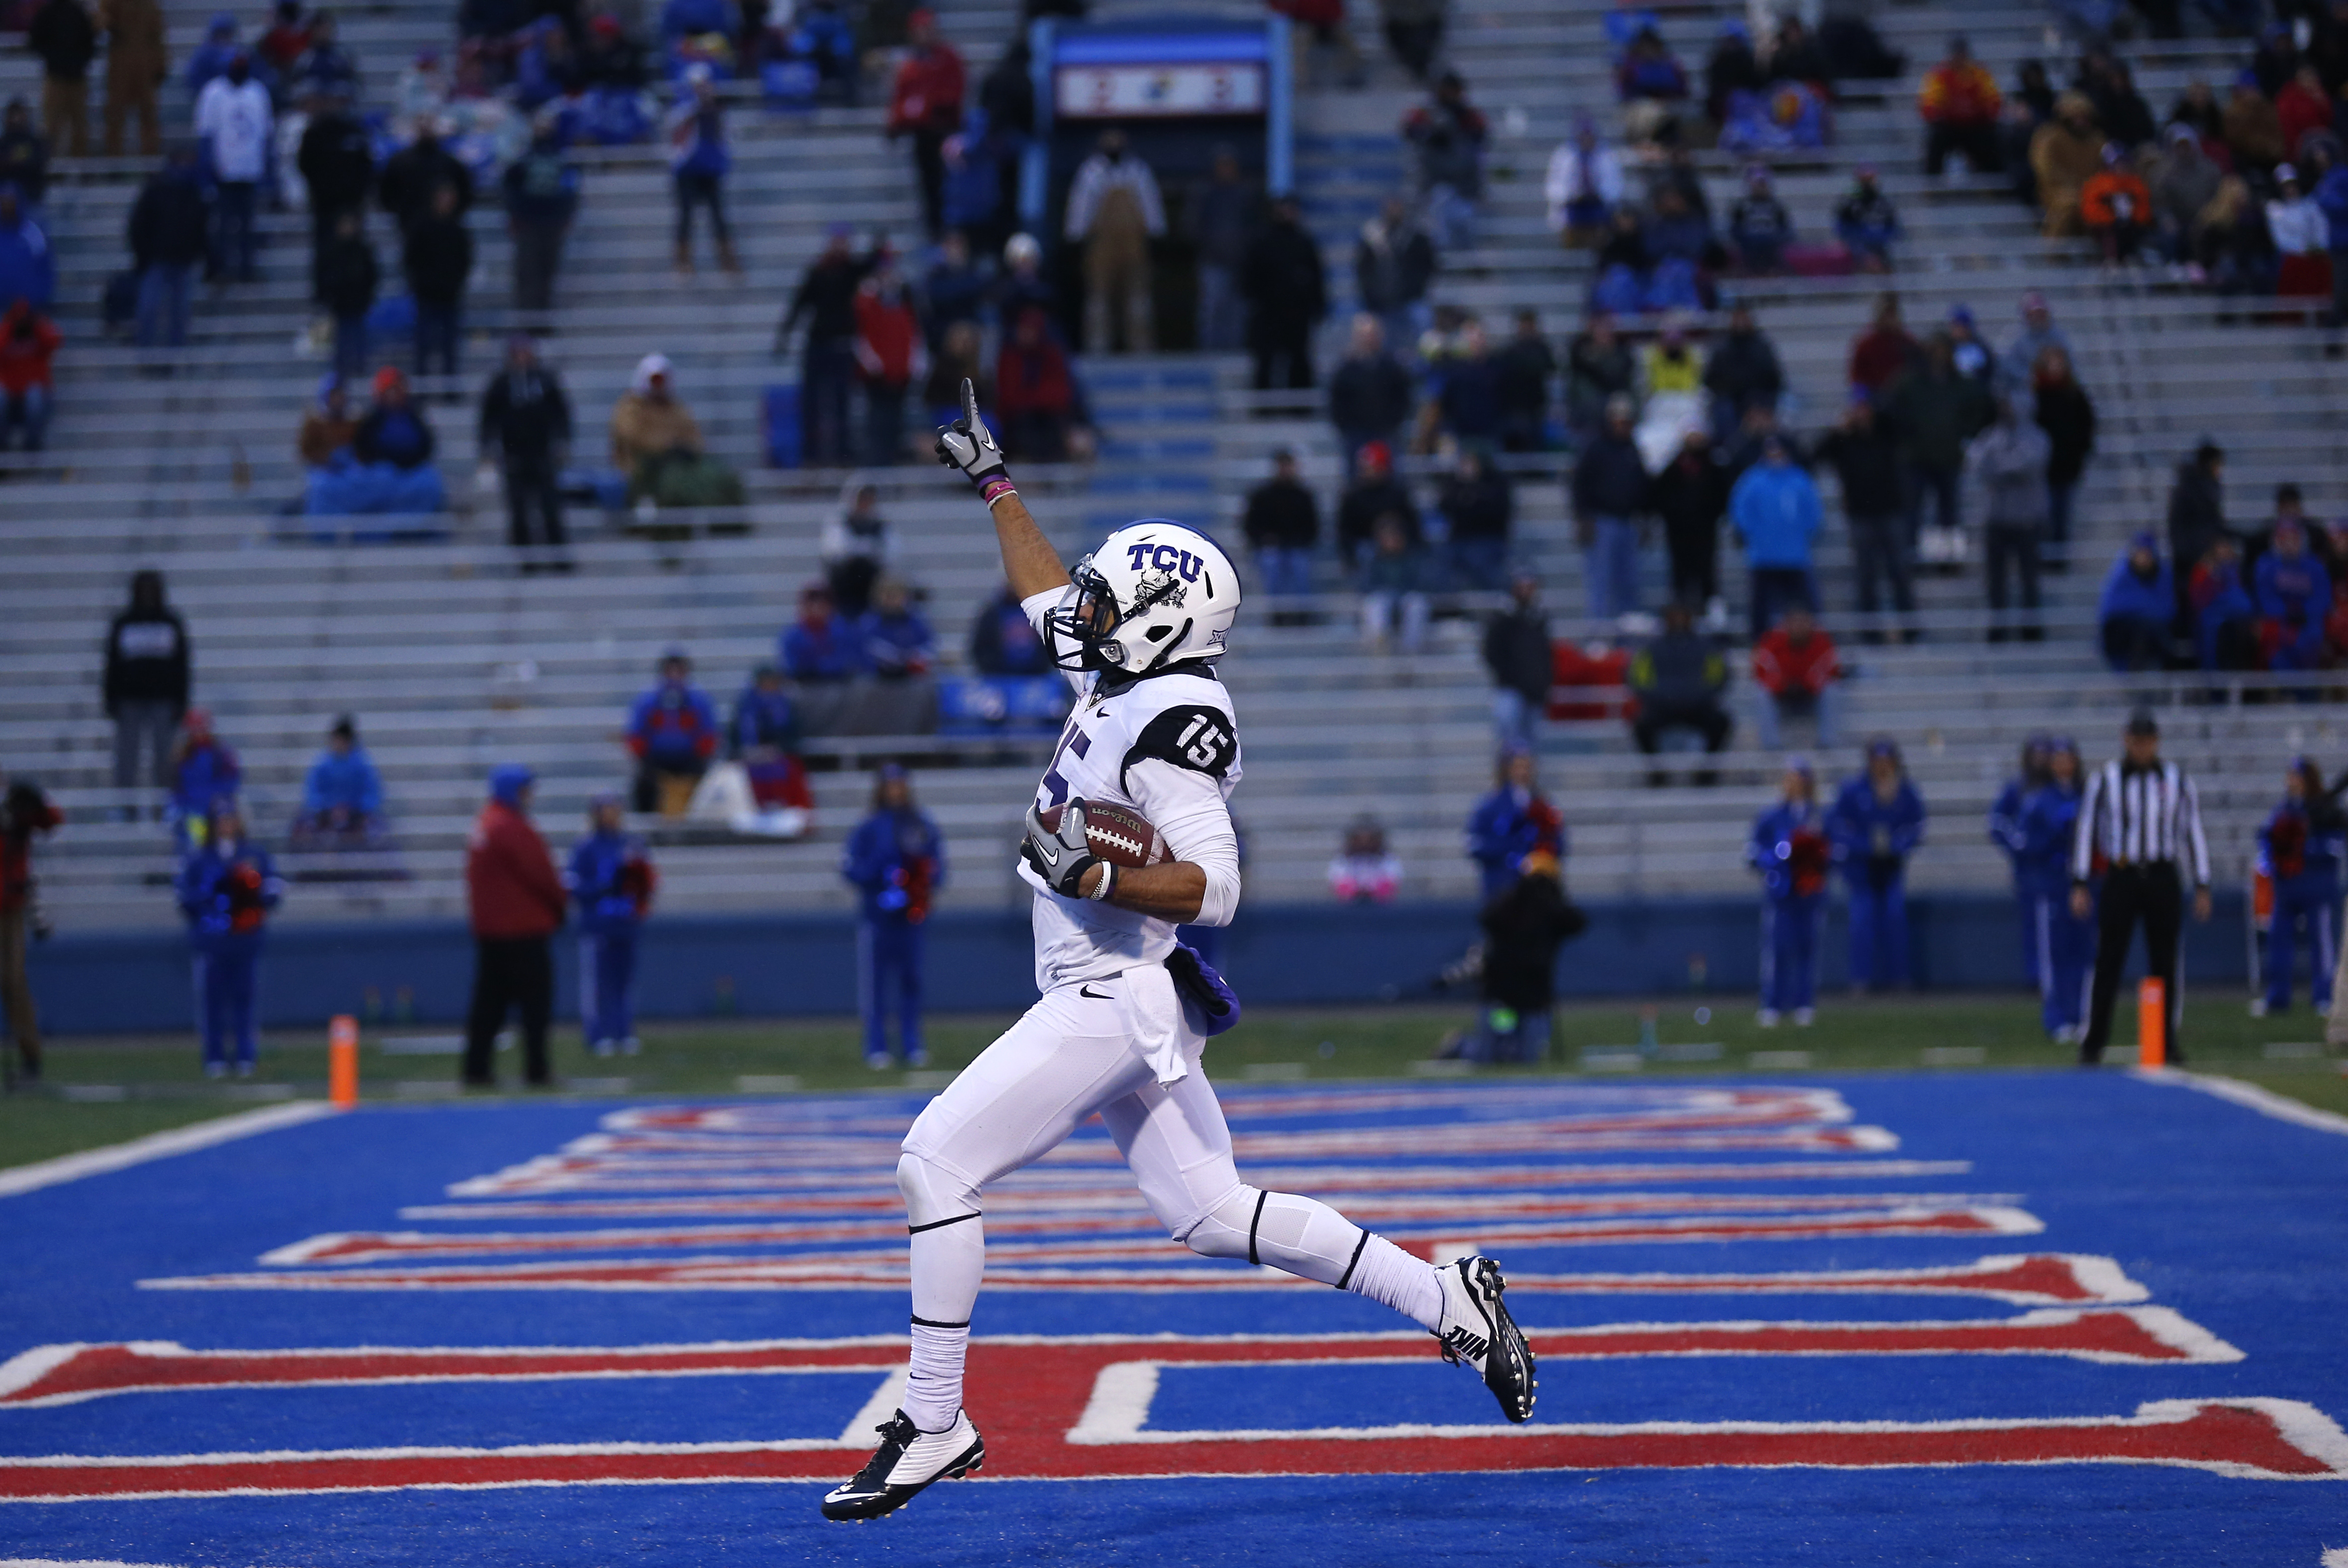 Cameron Echols-Luper of the TCU Horned Frogs celebrates his 69-yard punt return for a touchdown in the third quarter during a game against the Kansas Jayhawks at Memorial Stadium on Nov. 15, 2014 in Lawrence, Kansas.